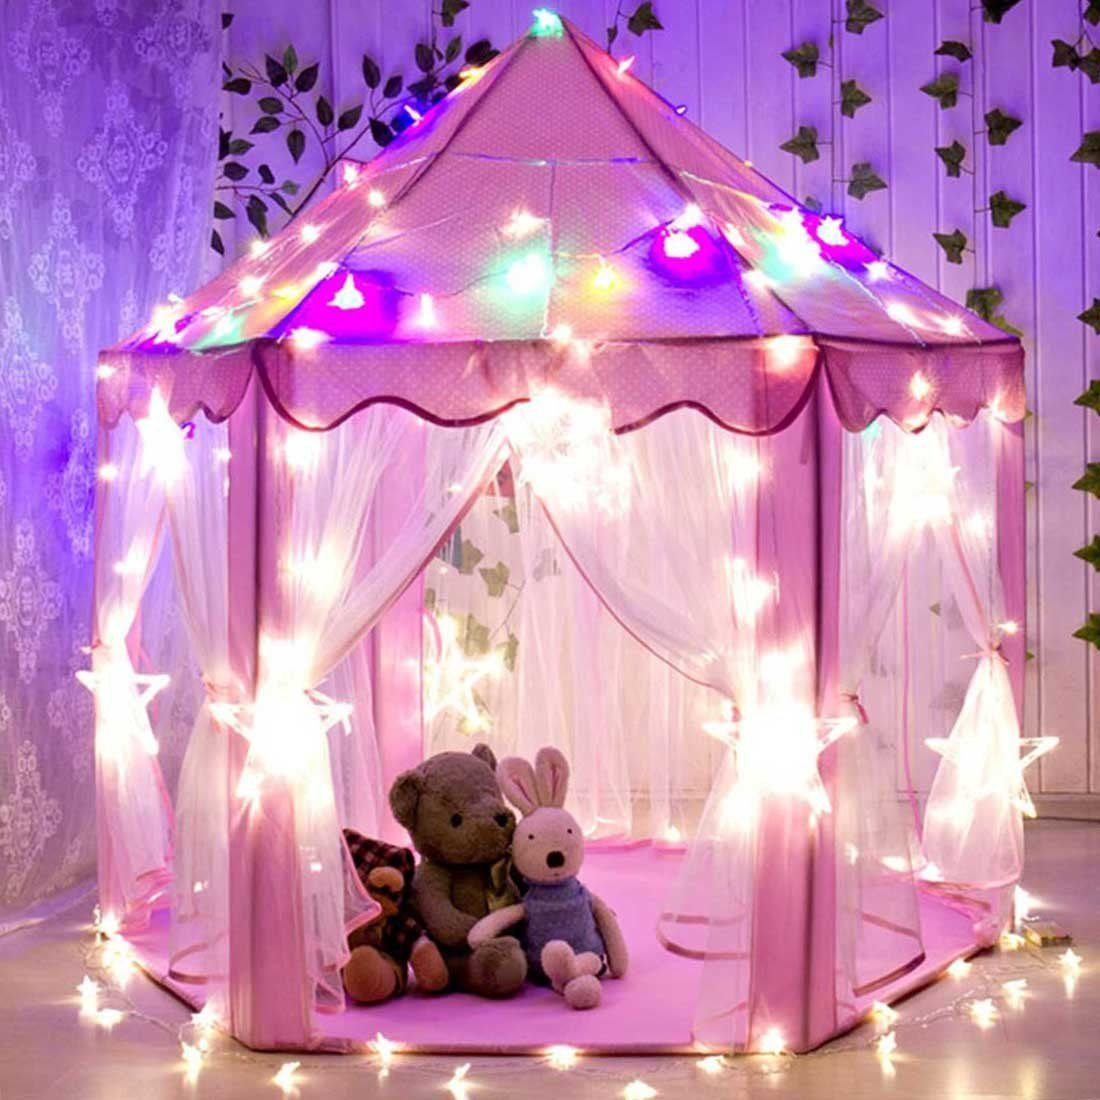 CuteKing Princess Castle Kids Play Tent Children Large Playhouse with LED Small Star Lights Pink & CuteKing Princess Castle Kids Play Tent Children Large Playhouse ...